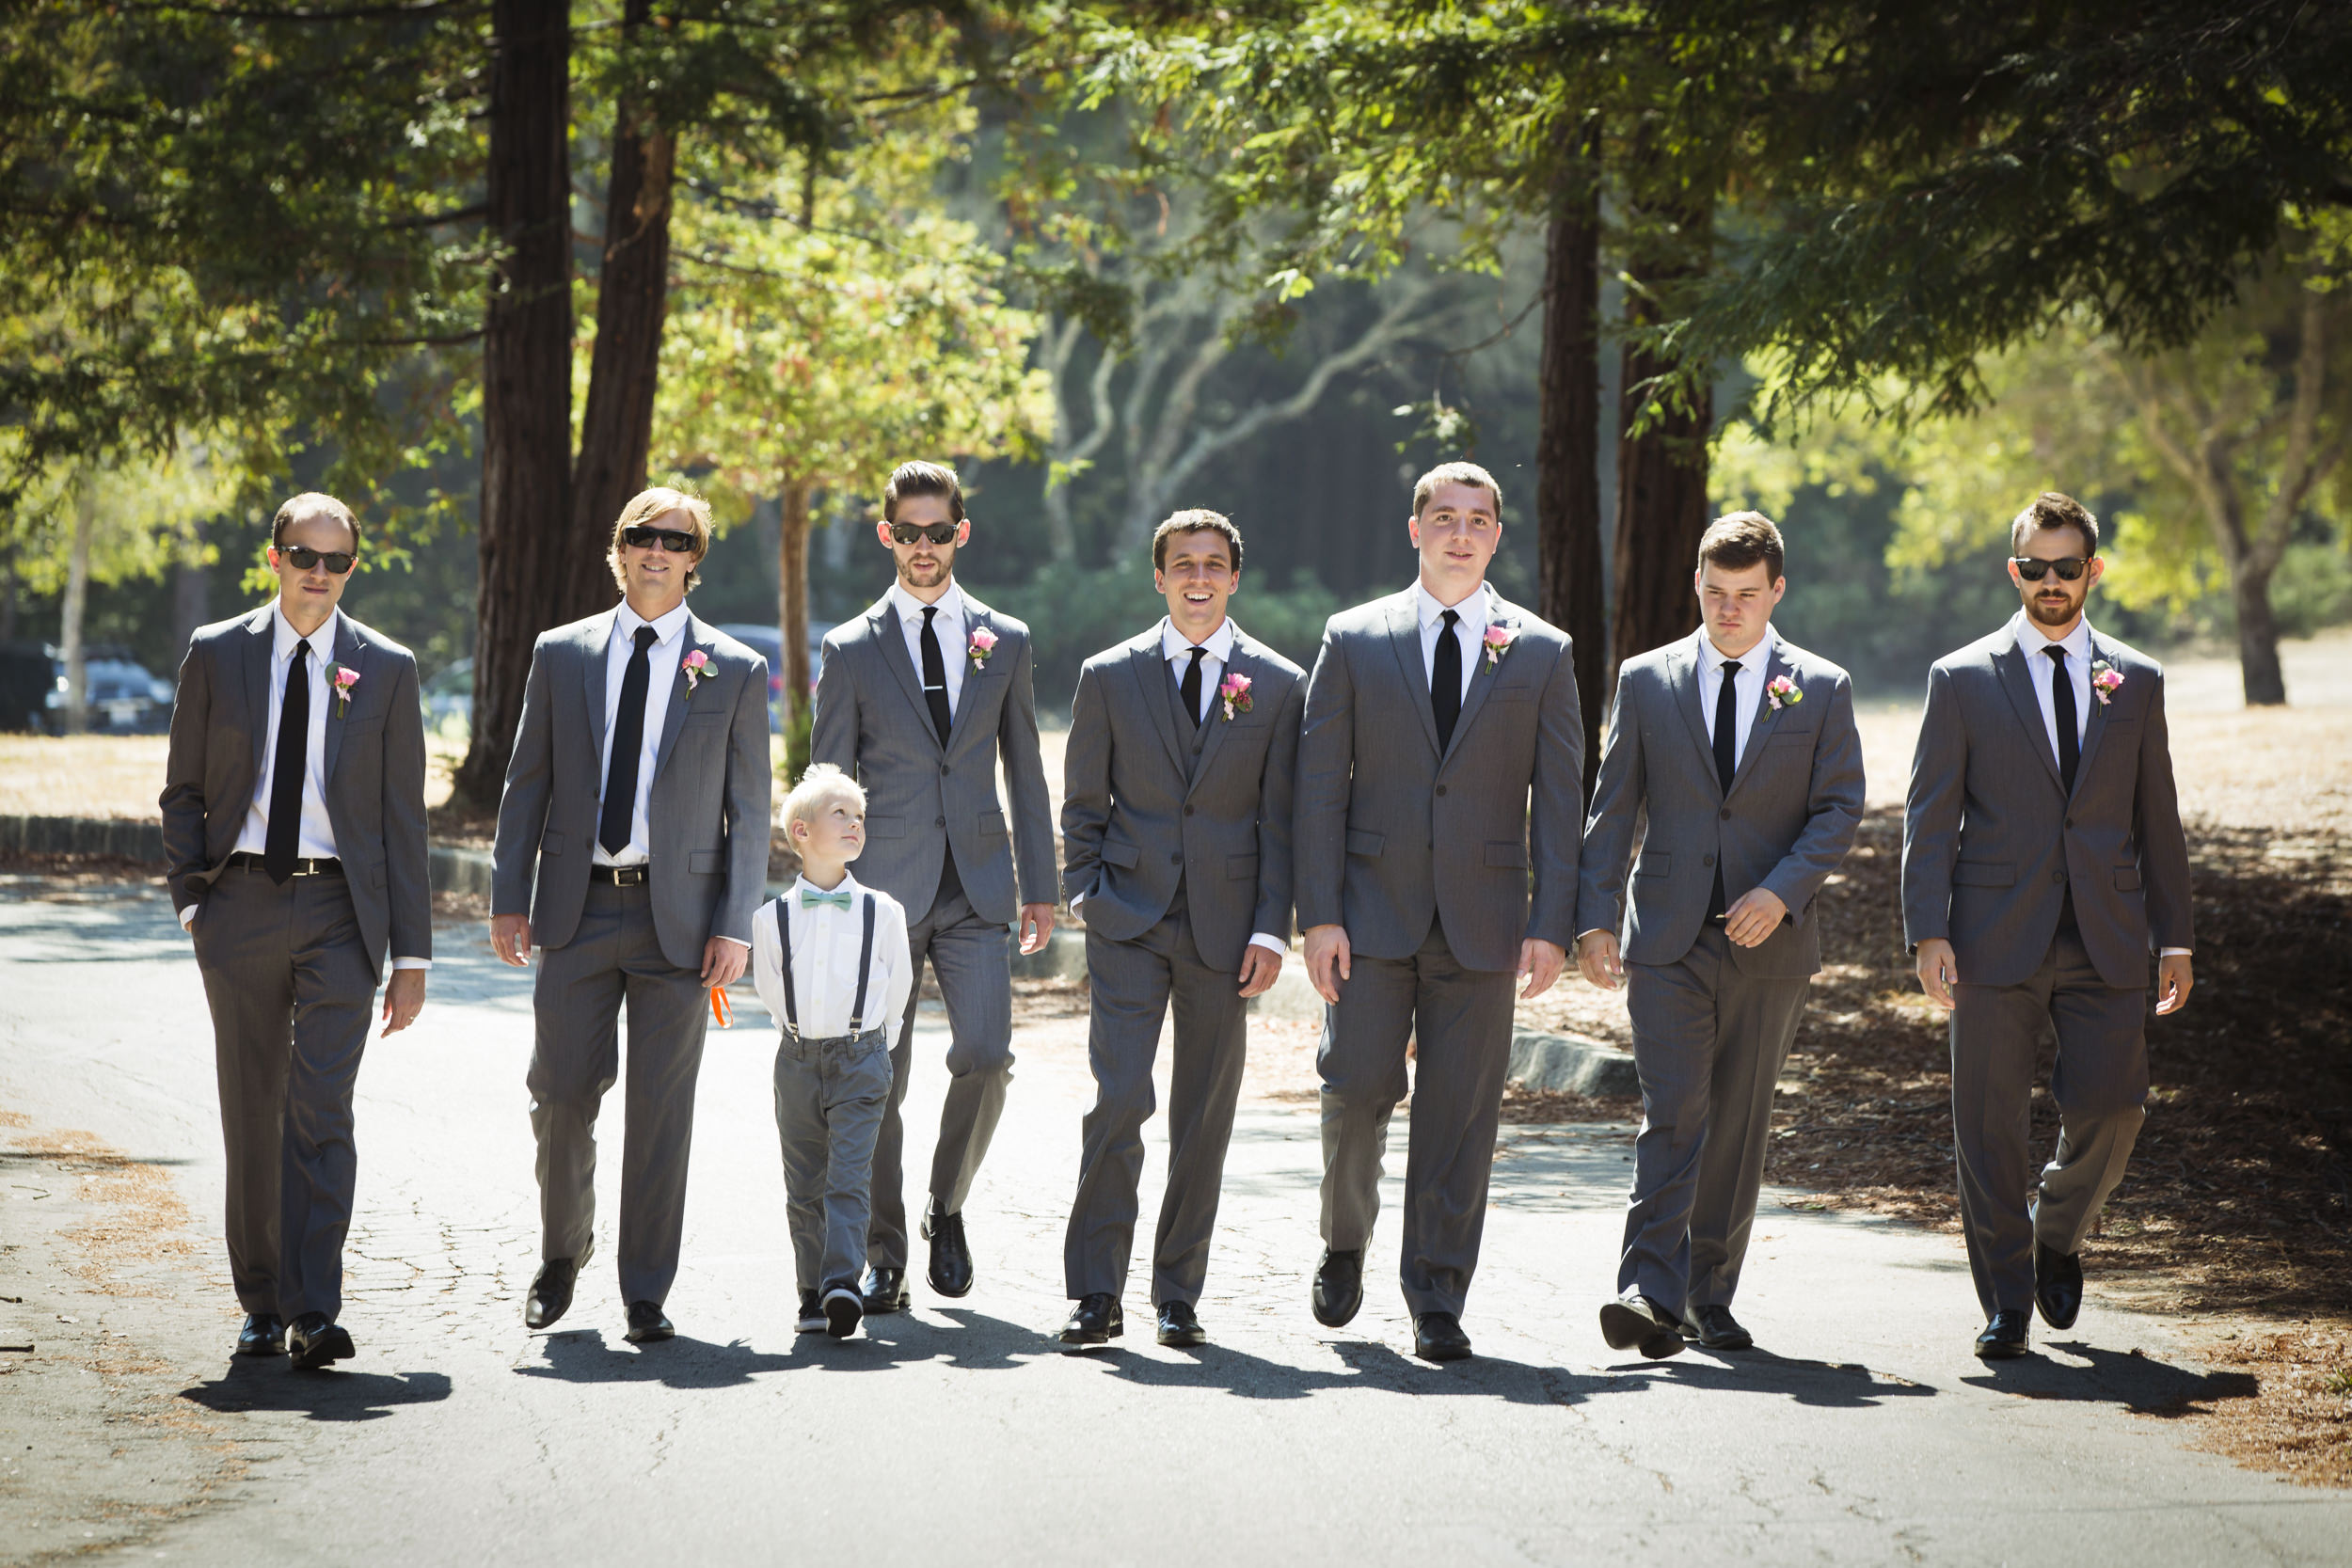 nate-wedding-groomsmen-walking-1.jpg